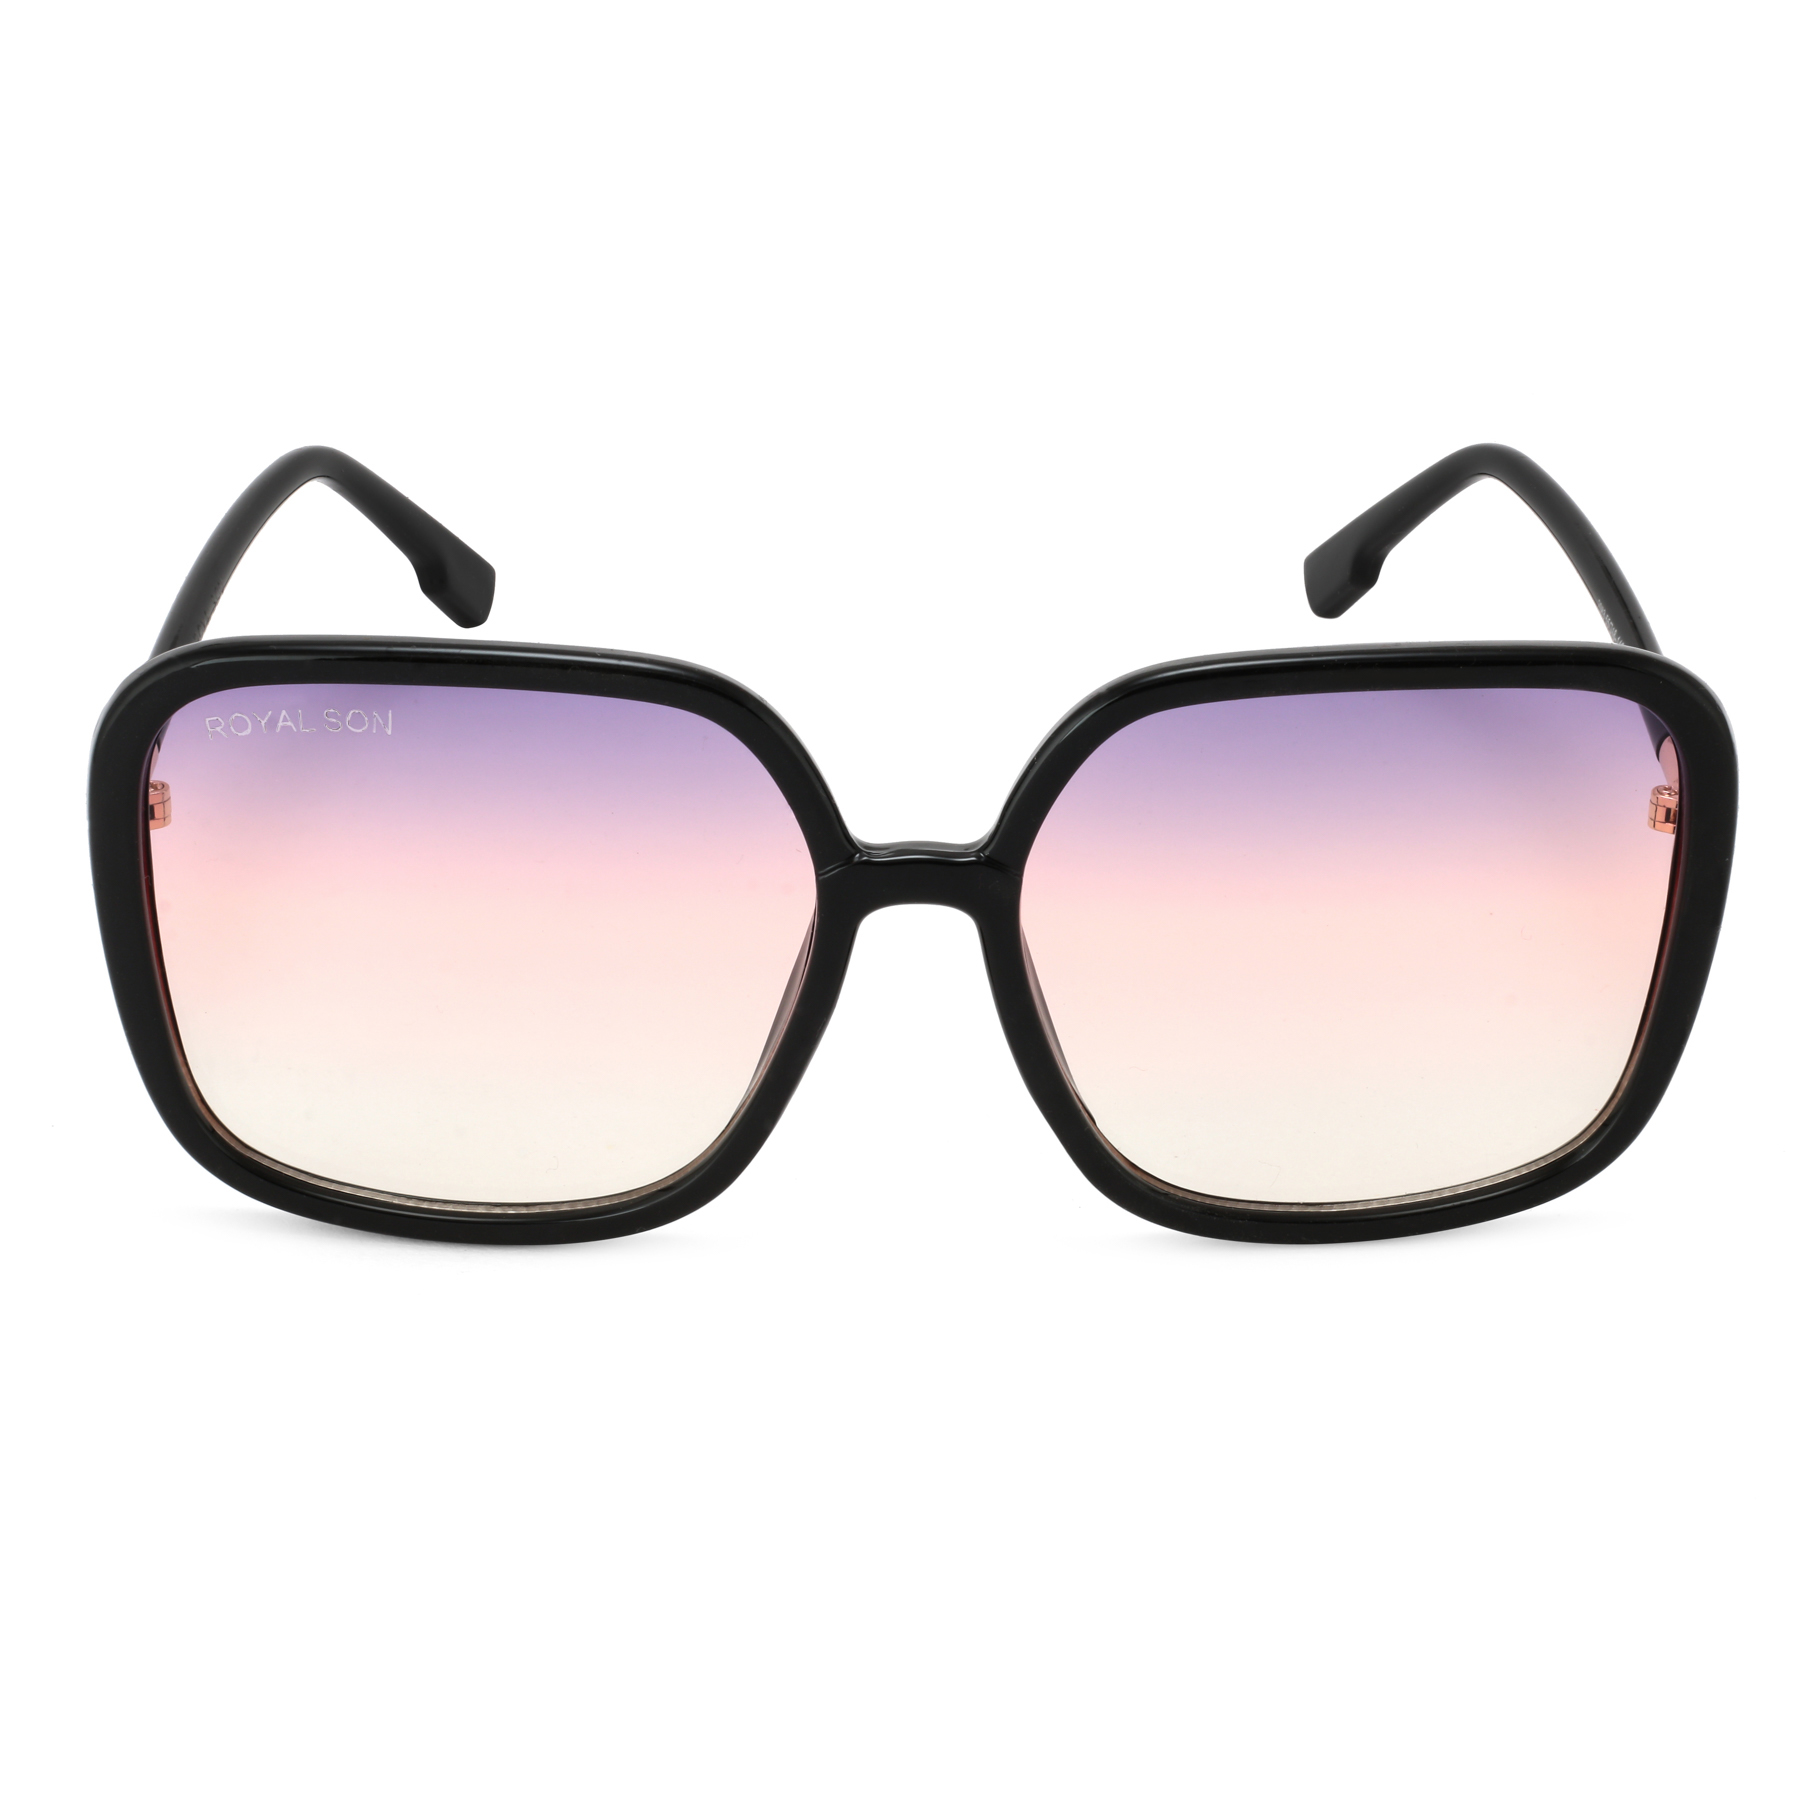 ROYAL SON Over Sized UV Protected Women Sunglasses - Purple